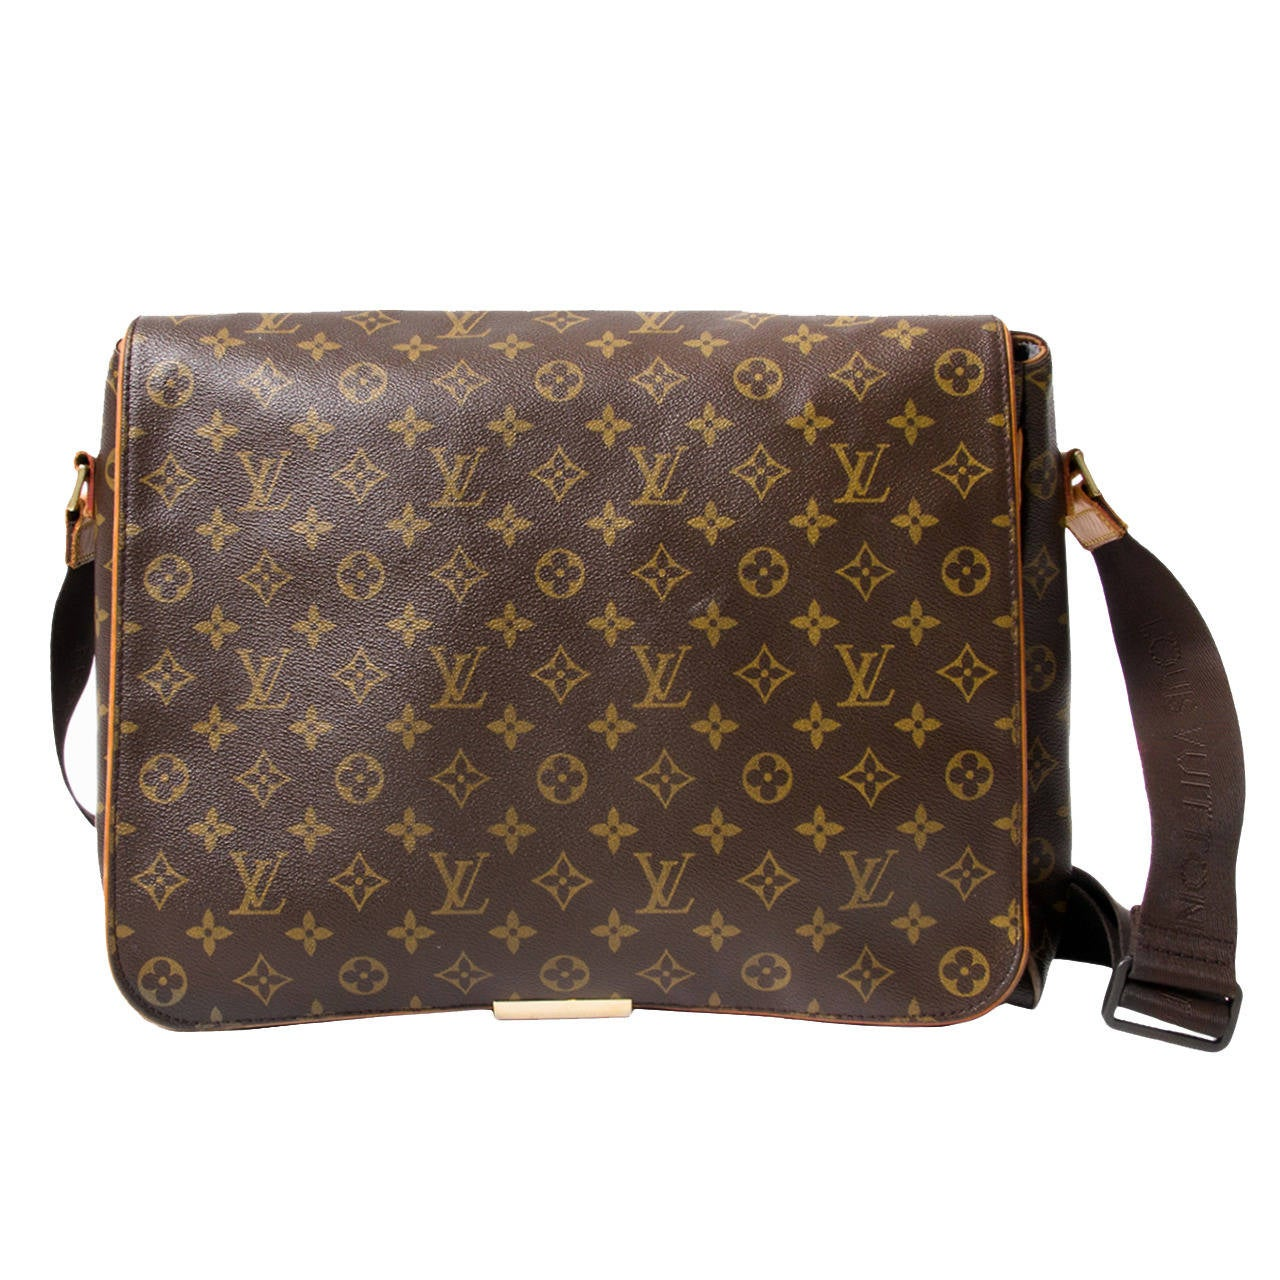 Louis Vuitton Abbesses Messenger Bag at 1stdibs